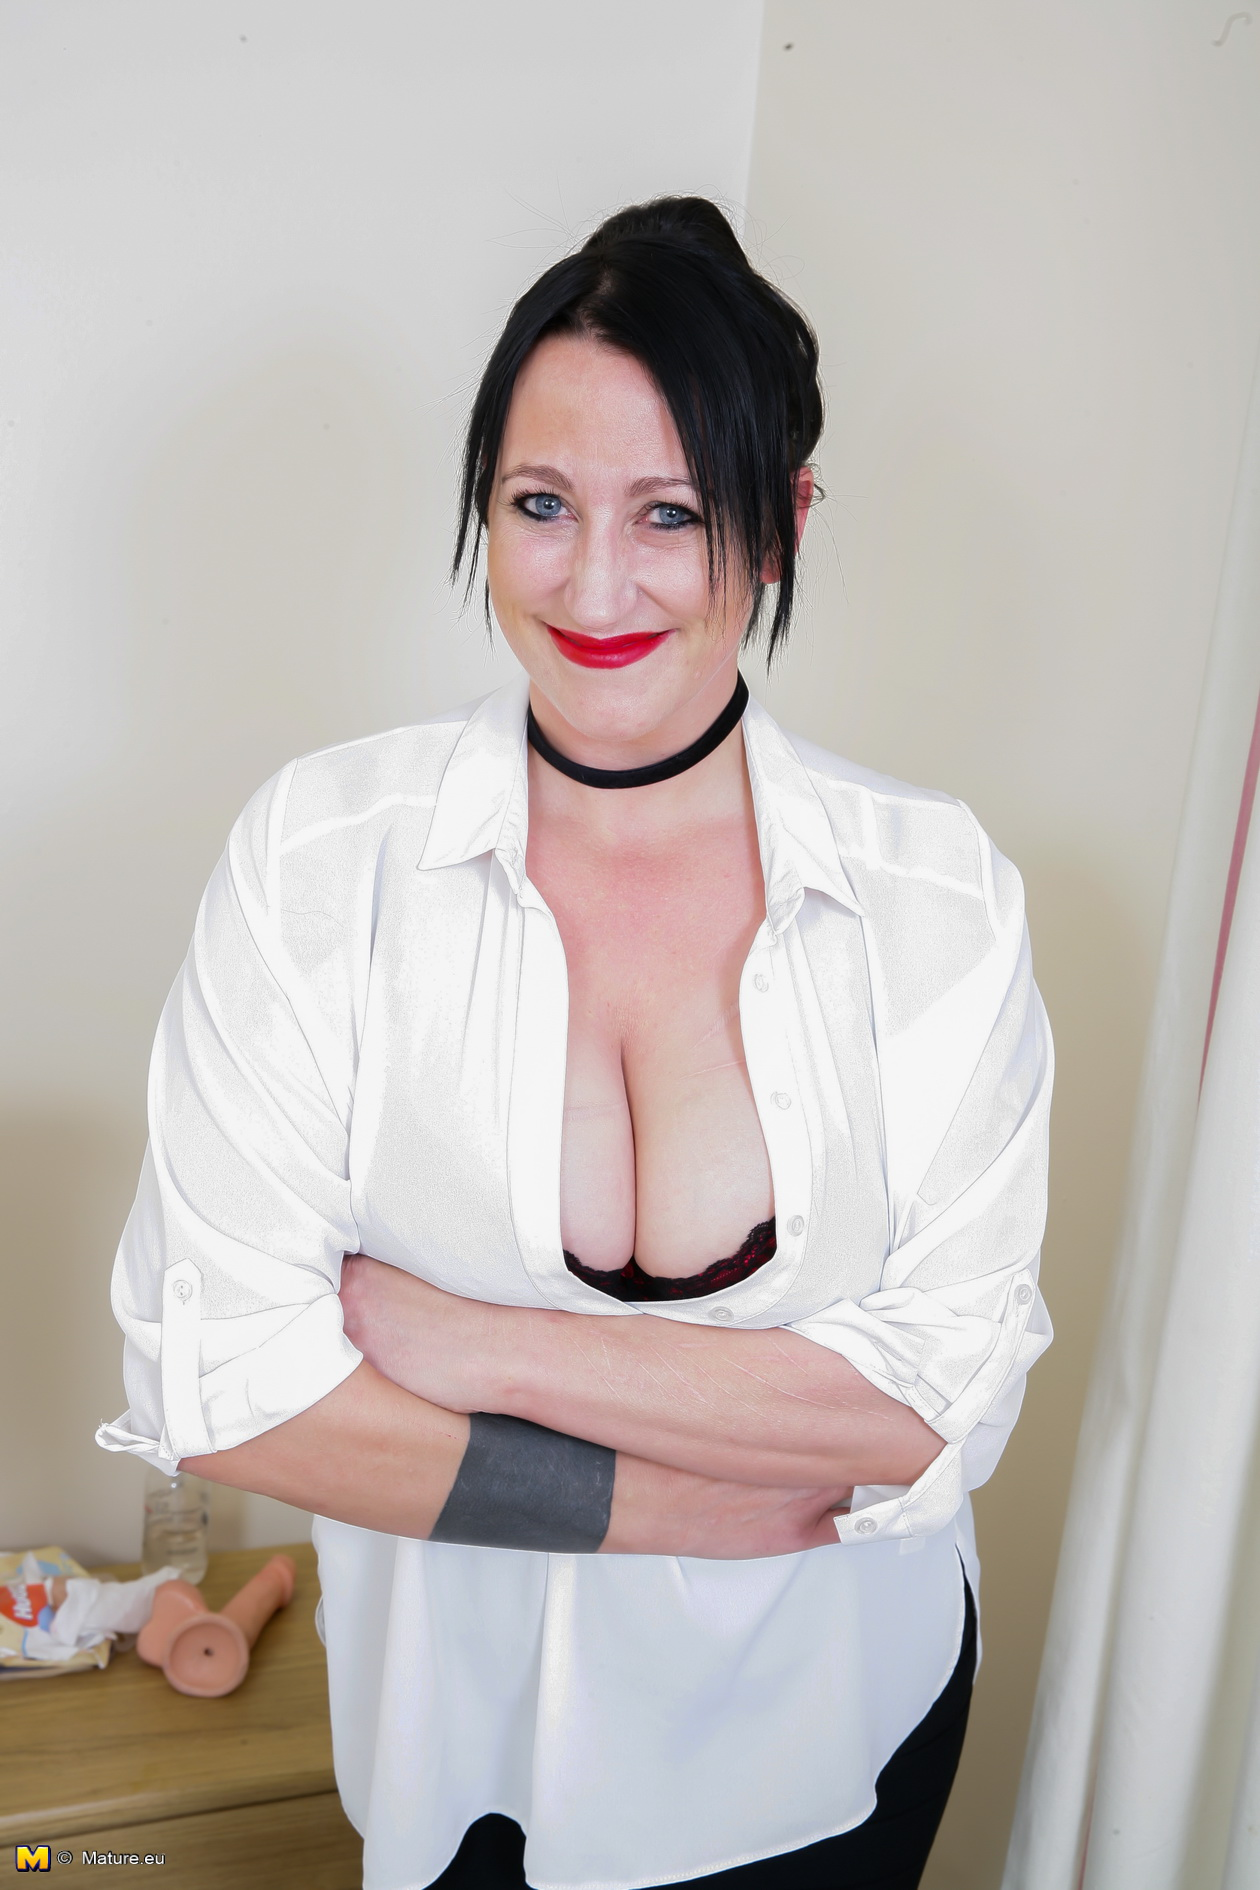 Big breasted mature lady playing with herself Free